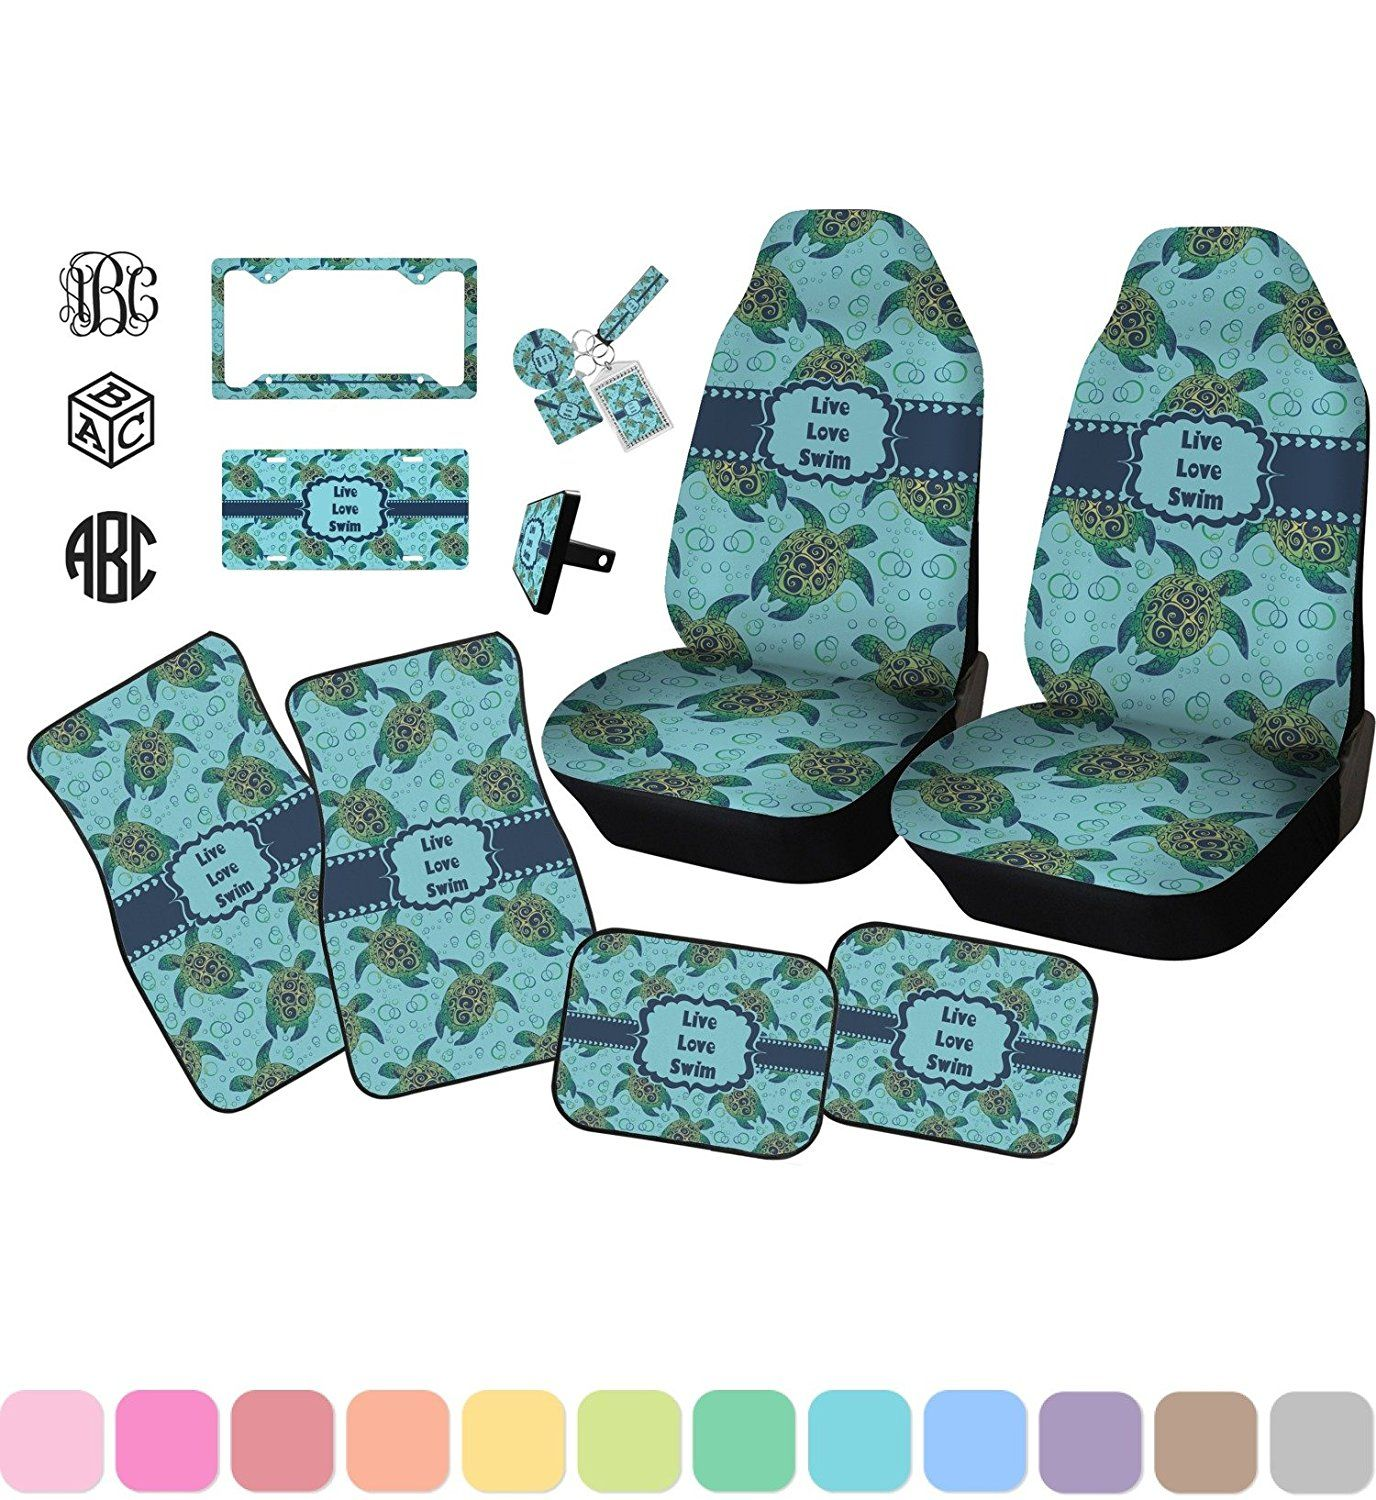 Admirable Amazon Com Sea Turtles Car Floor Mats Set 2 Front 2 Caraccident5 Cool Chair Designs And Ideas Caraccident5Info